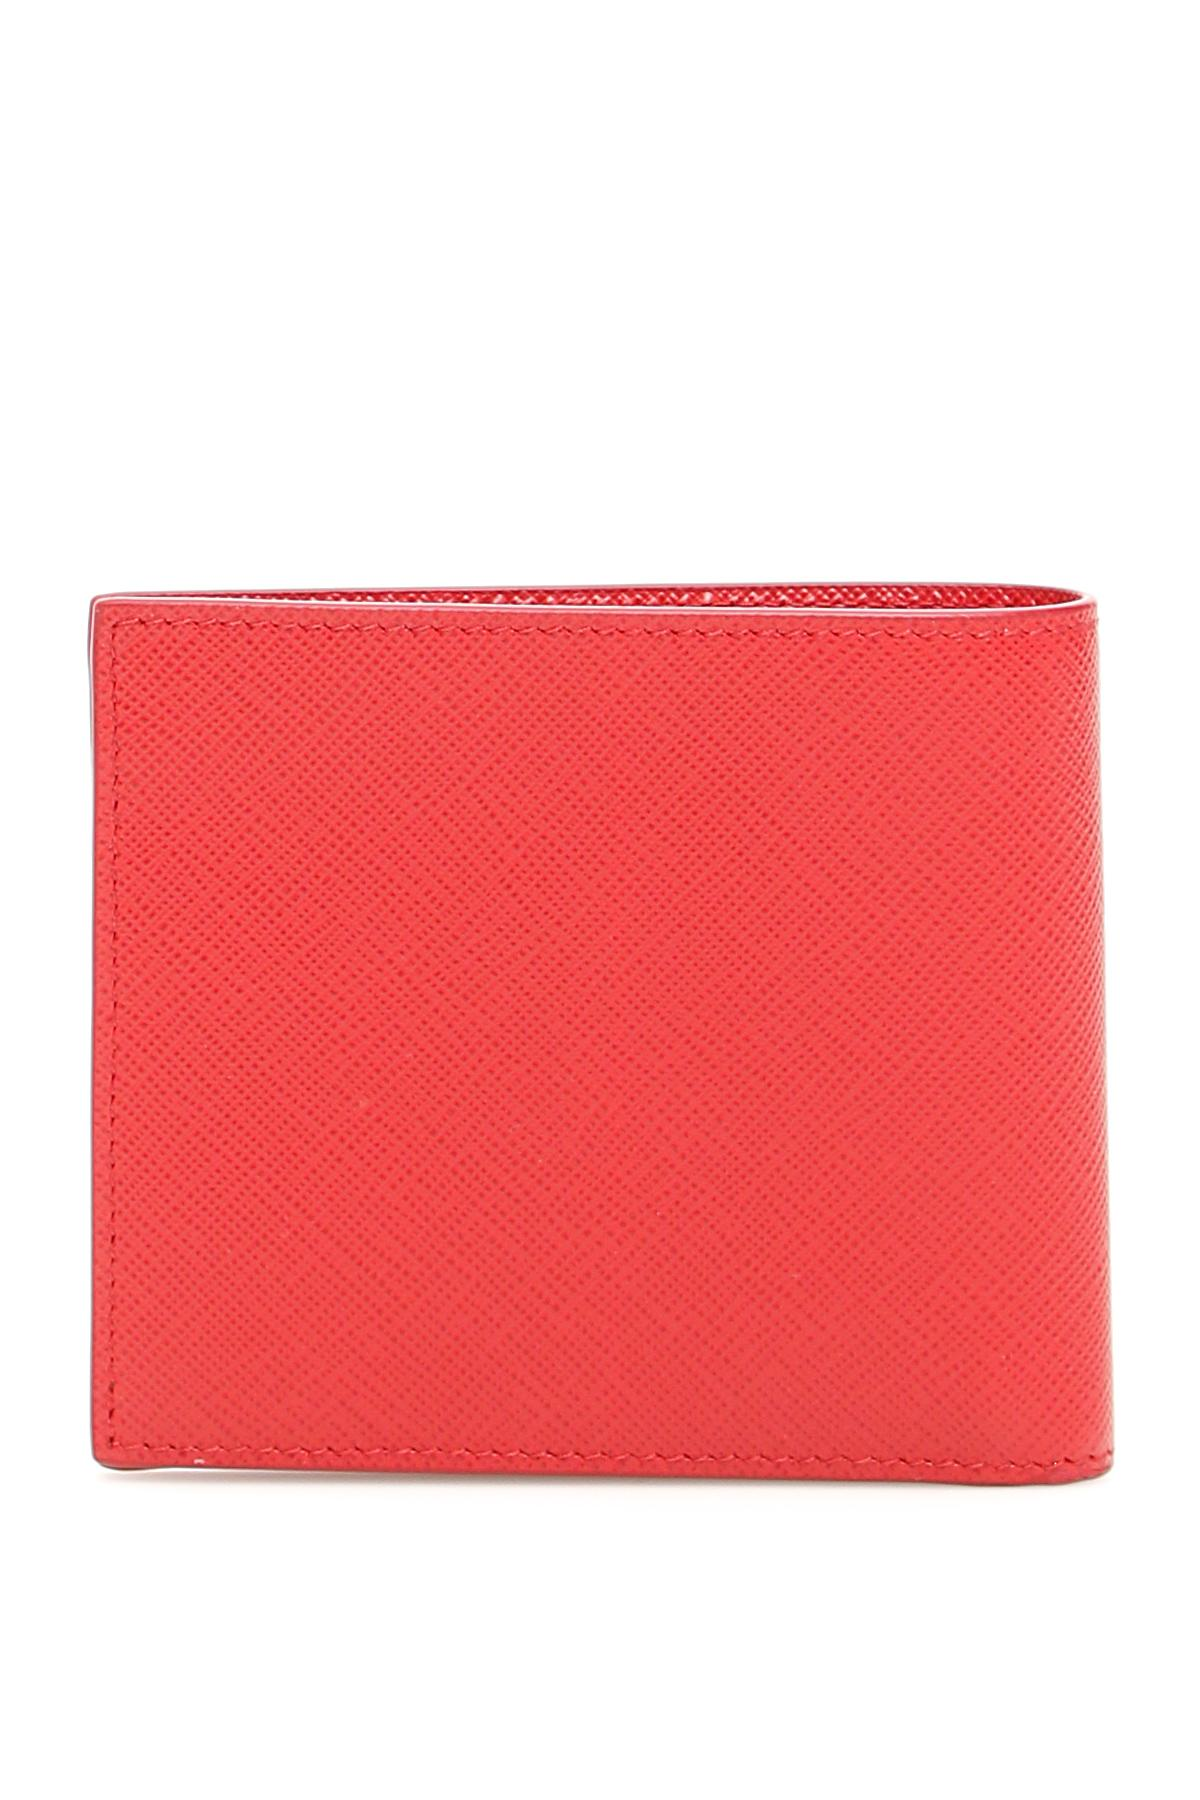 332148278b1e Lyst - Prada Saffiano Wallet With Fish Print in Red for Men